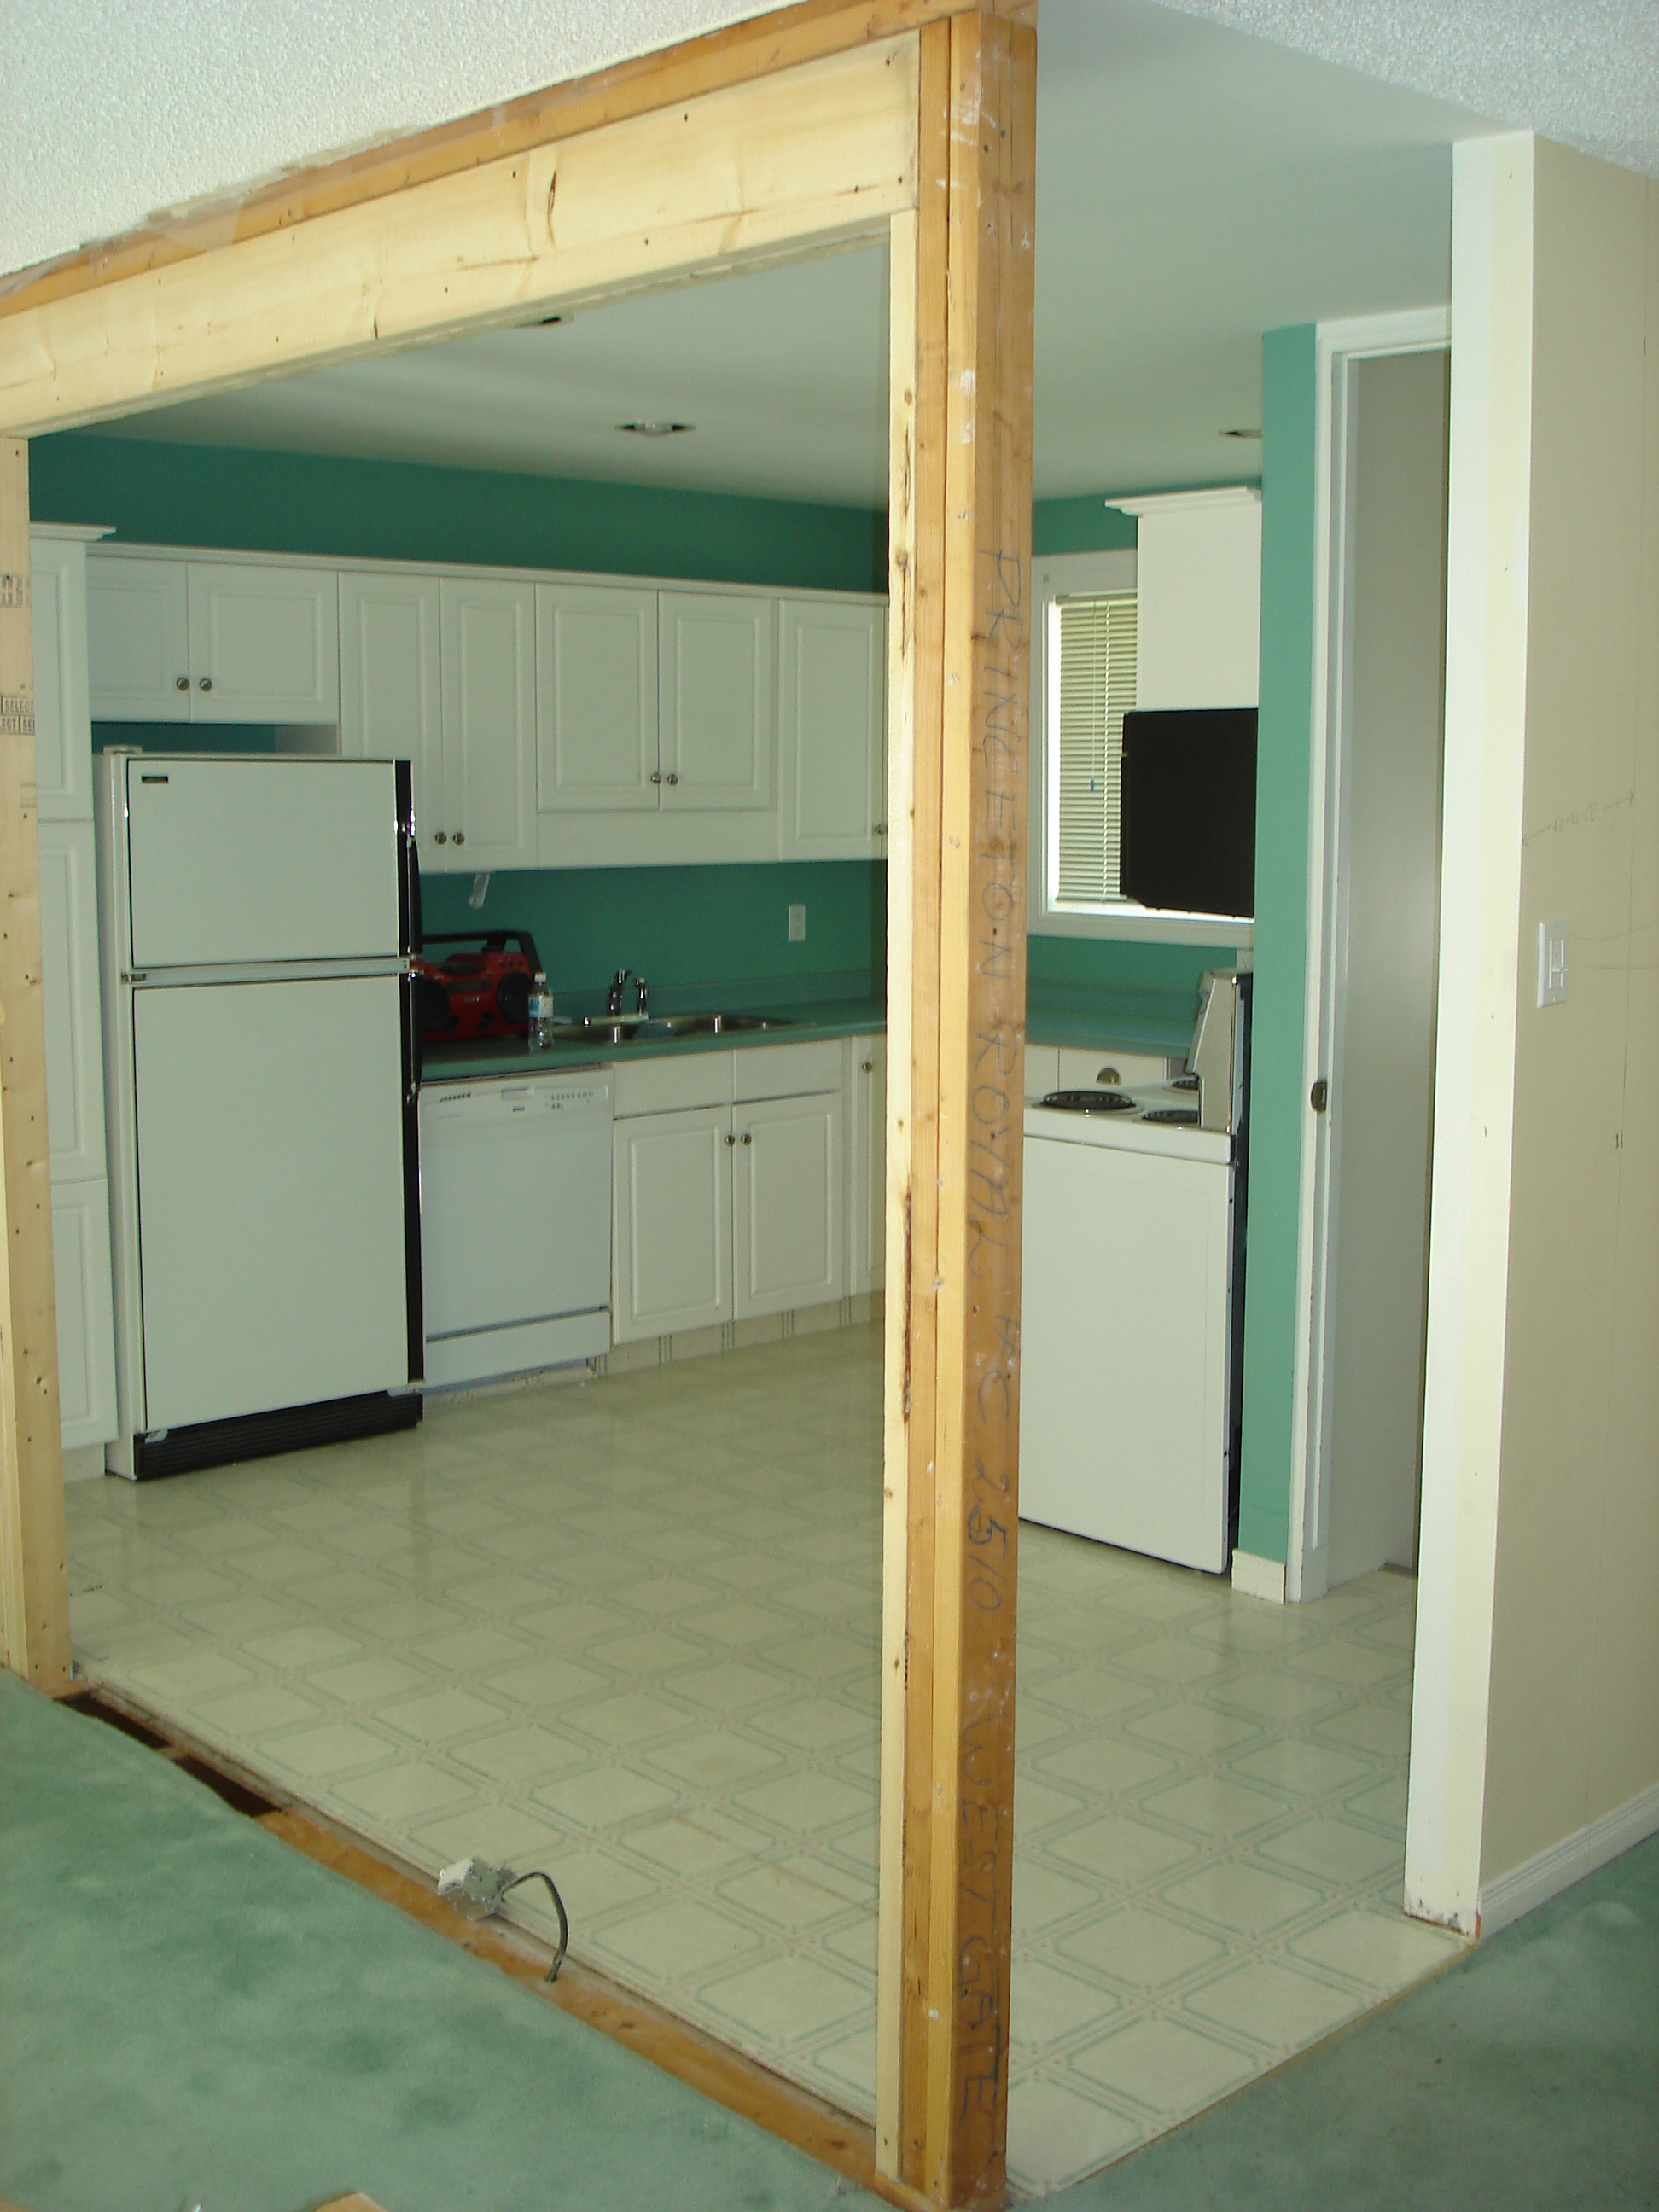 - Kitchen Reno: Before...